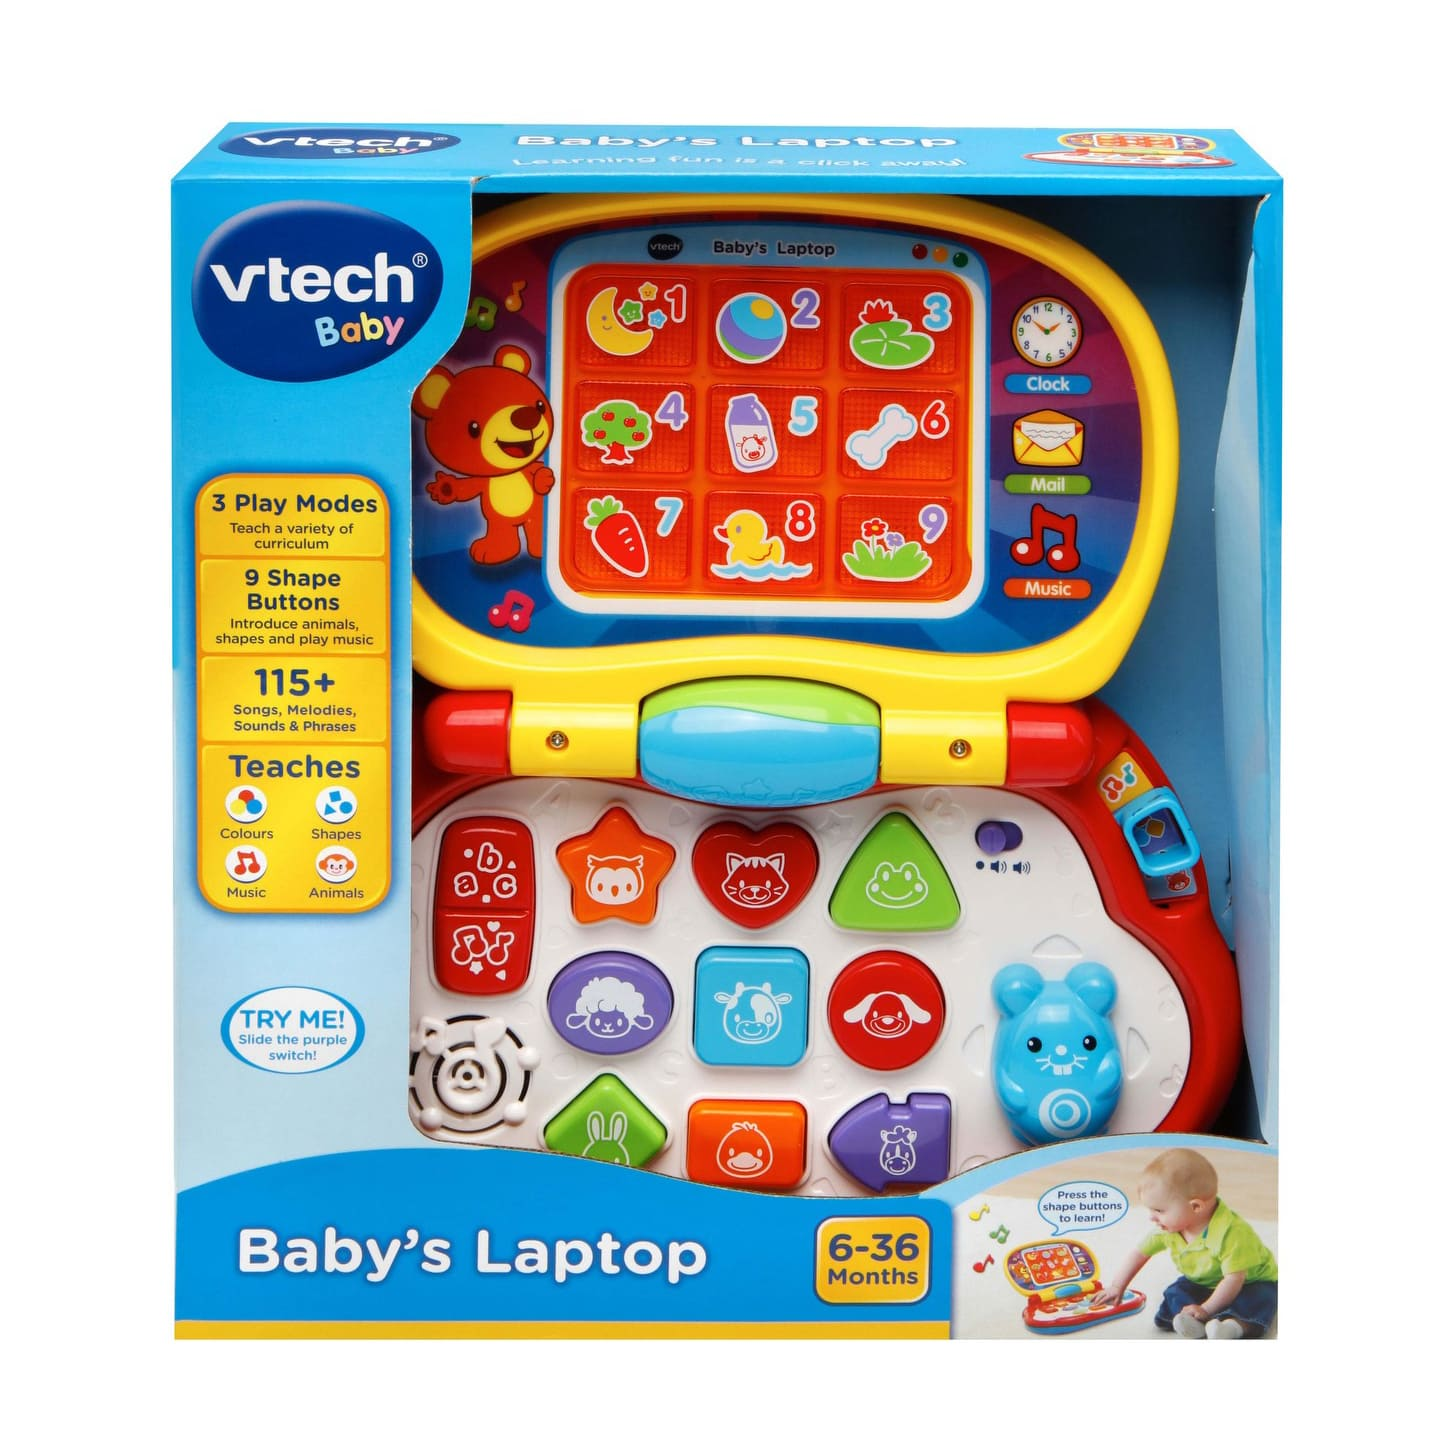 VTech Baby's Laptop at Toys R Us